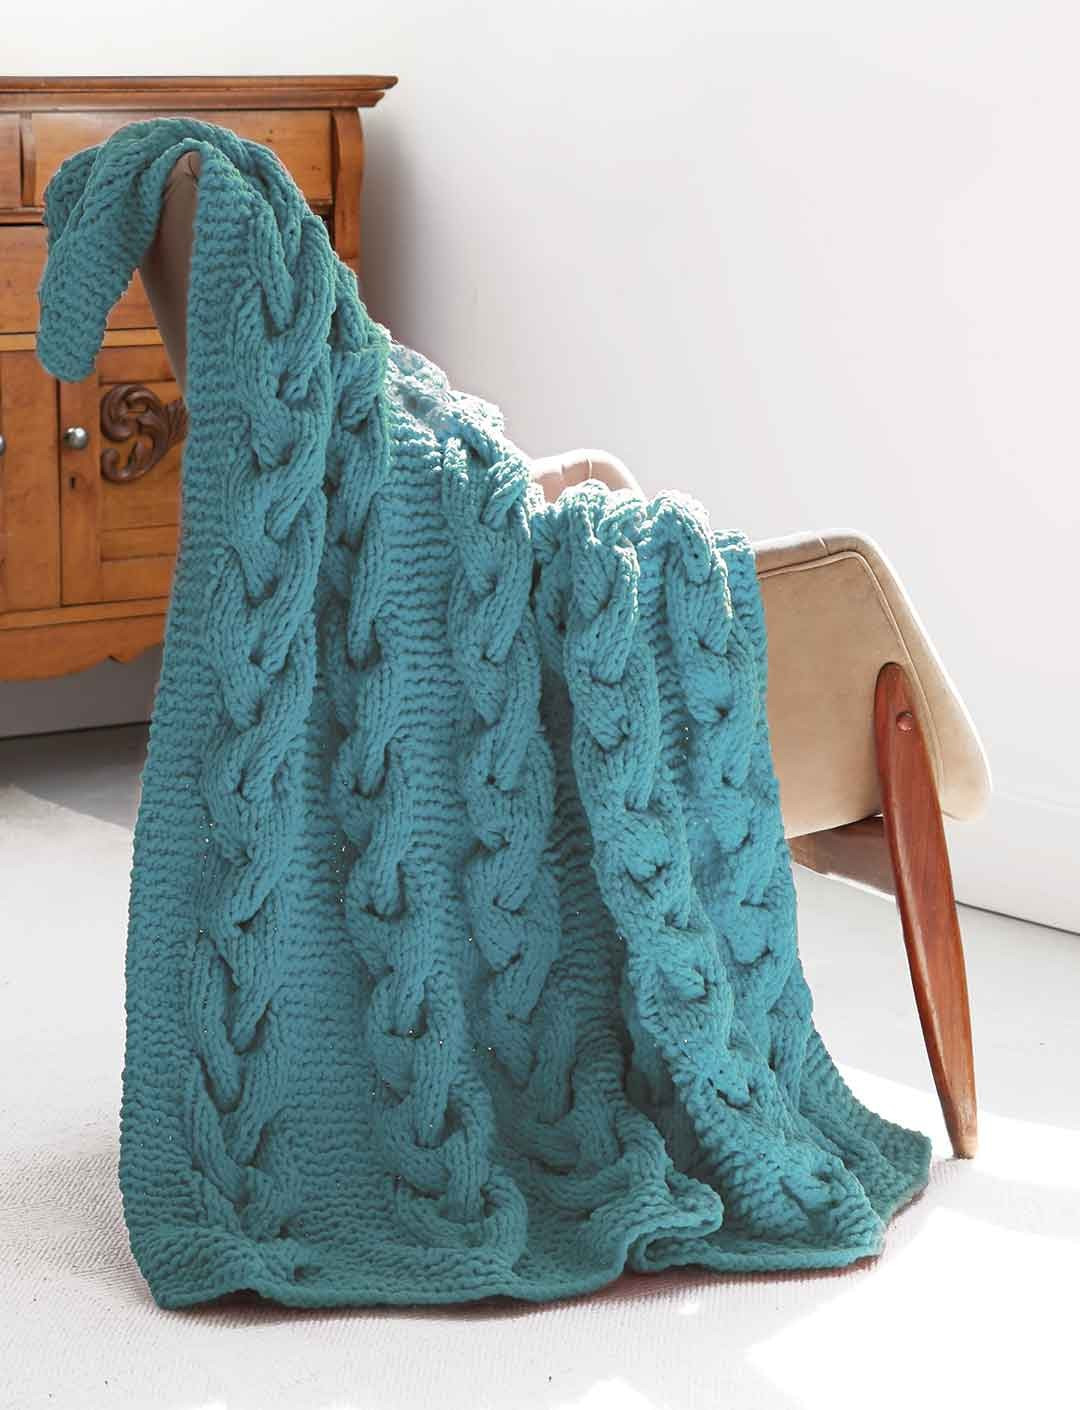 Free Afghan Knitting Patterns Lovely Bernat Cable Afghan Knit Pattern Of Adorable 42 Pictures Free Afghan Knitting Patterns